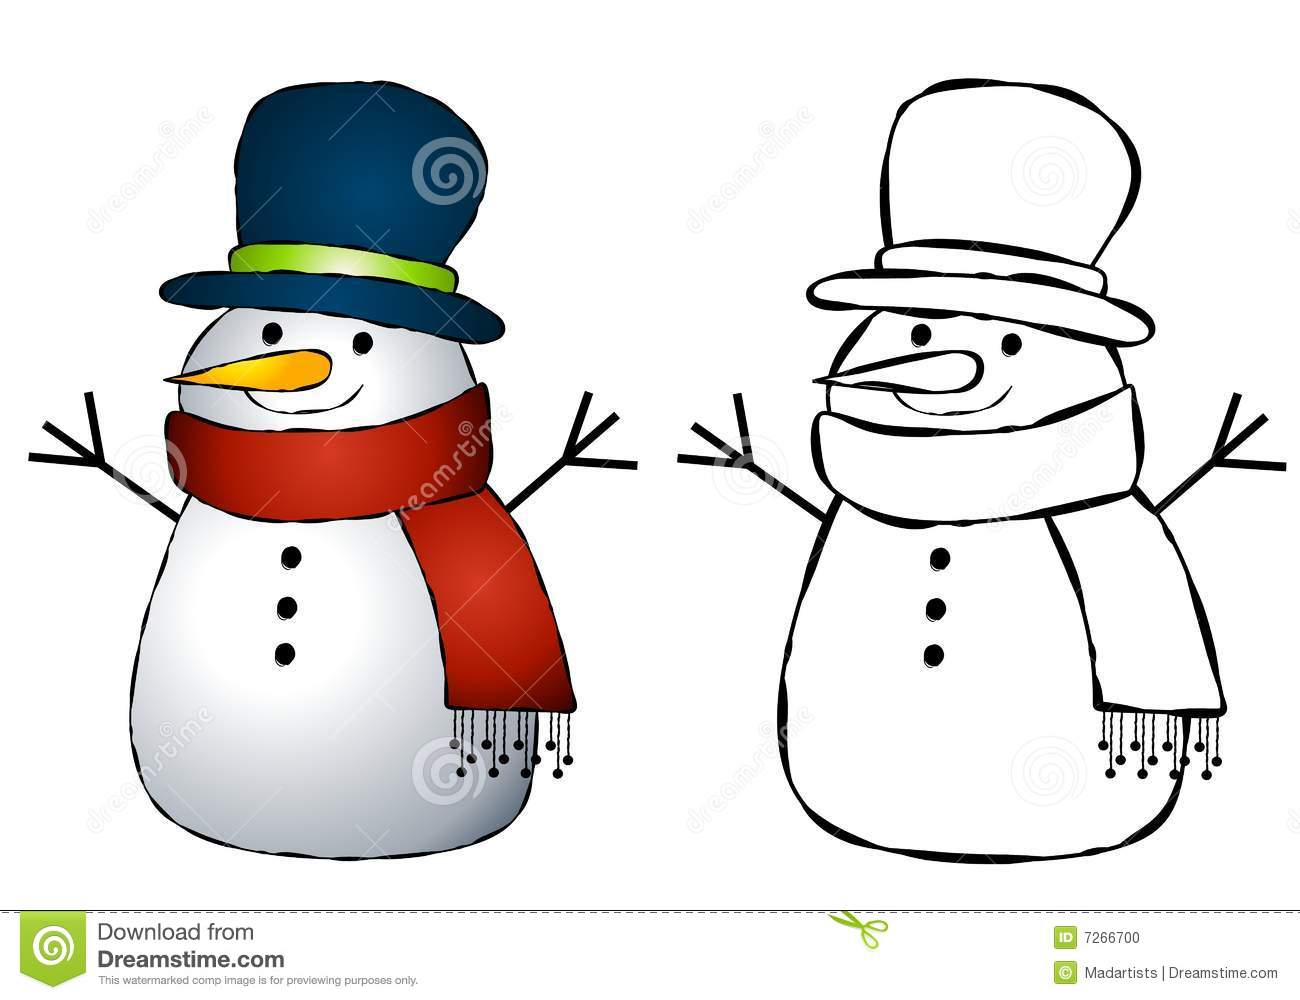 Free Snowman Images.